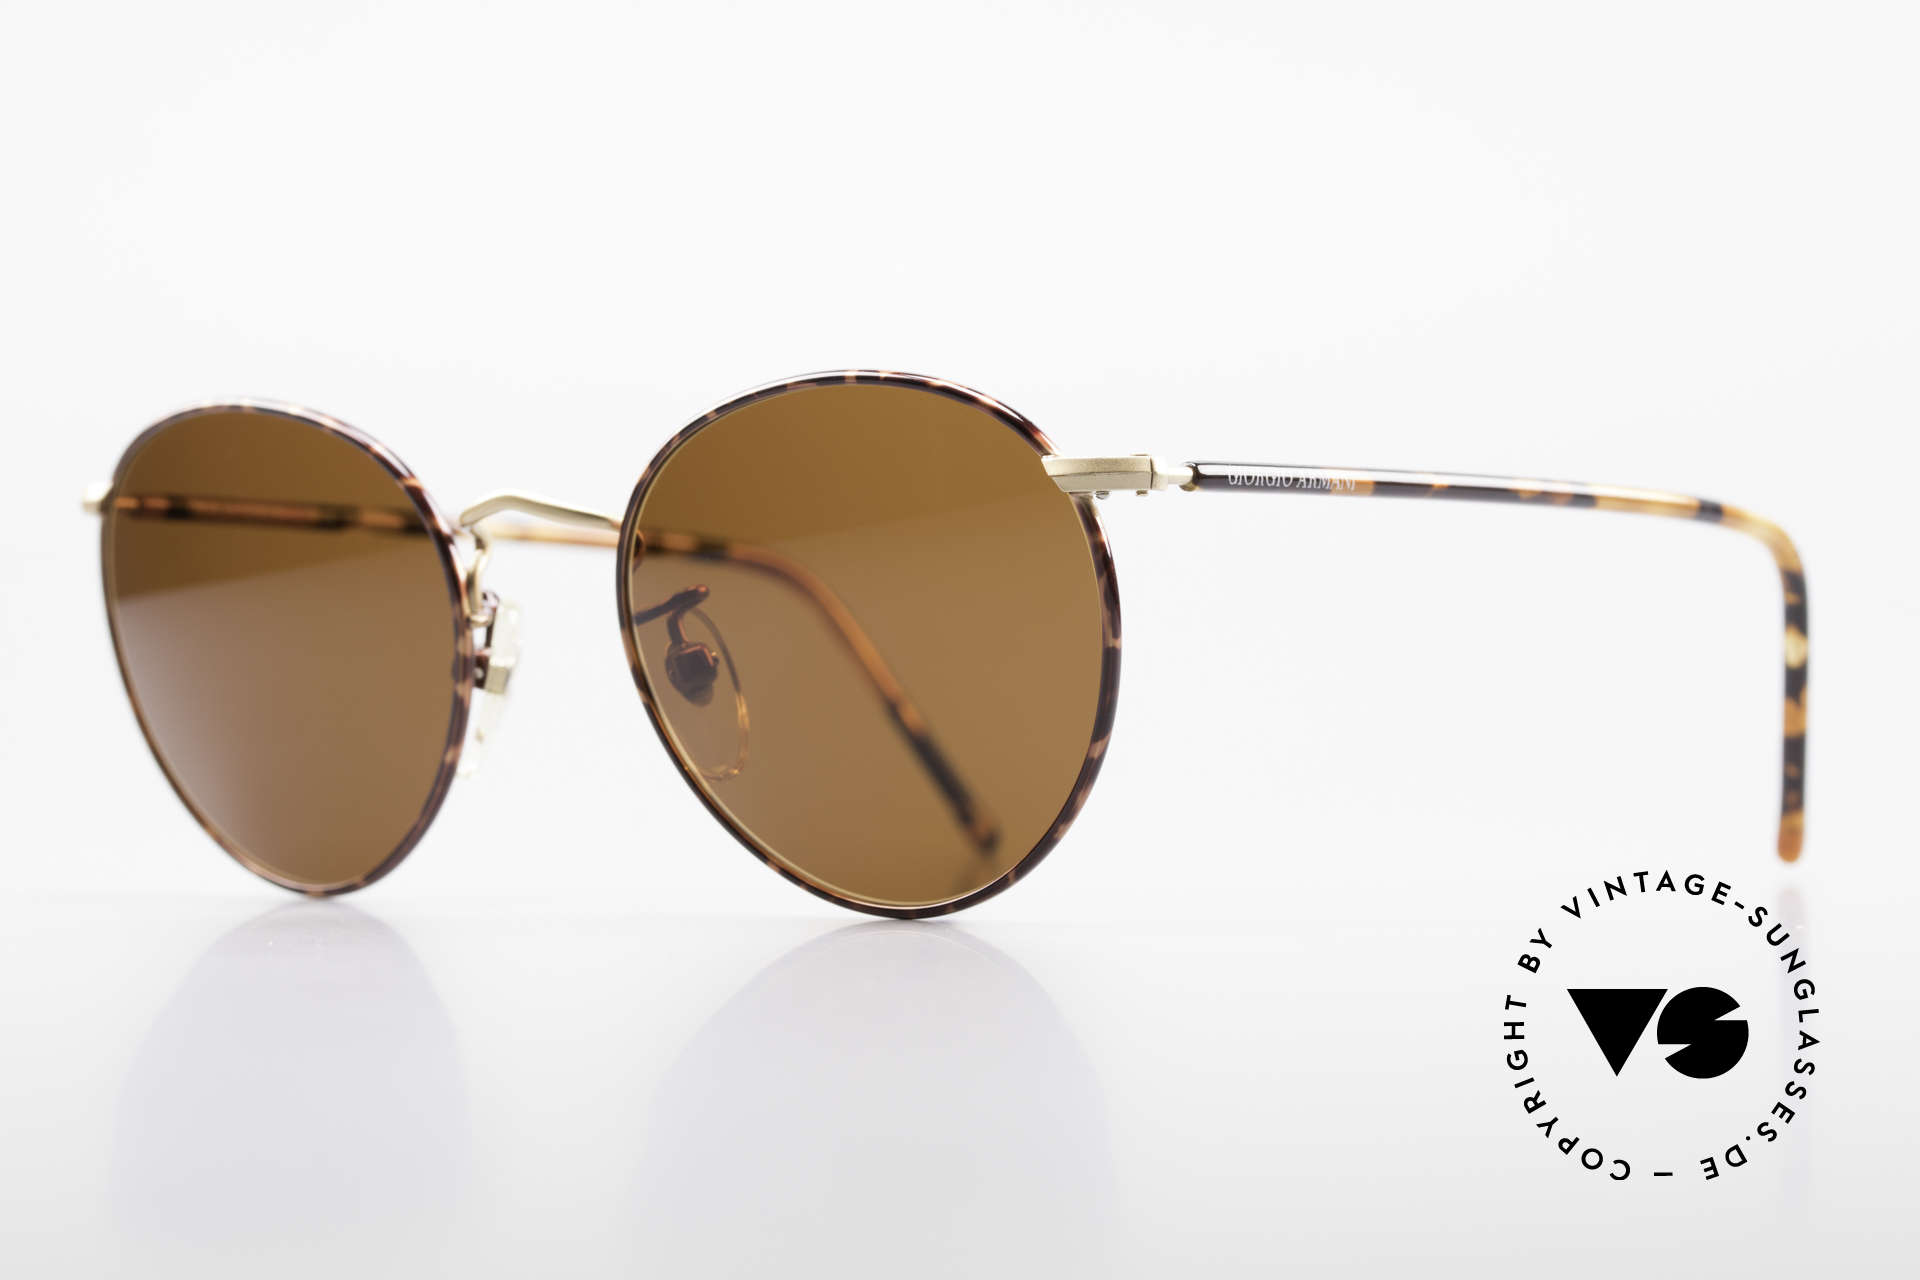 Giorgio Armani 138 Panto Vintage Sunglasses, noble 'chestnut brown/tortoise/gold' frame coloring, Made for Men